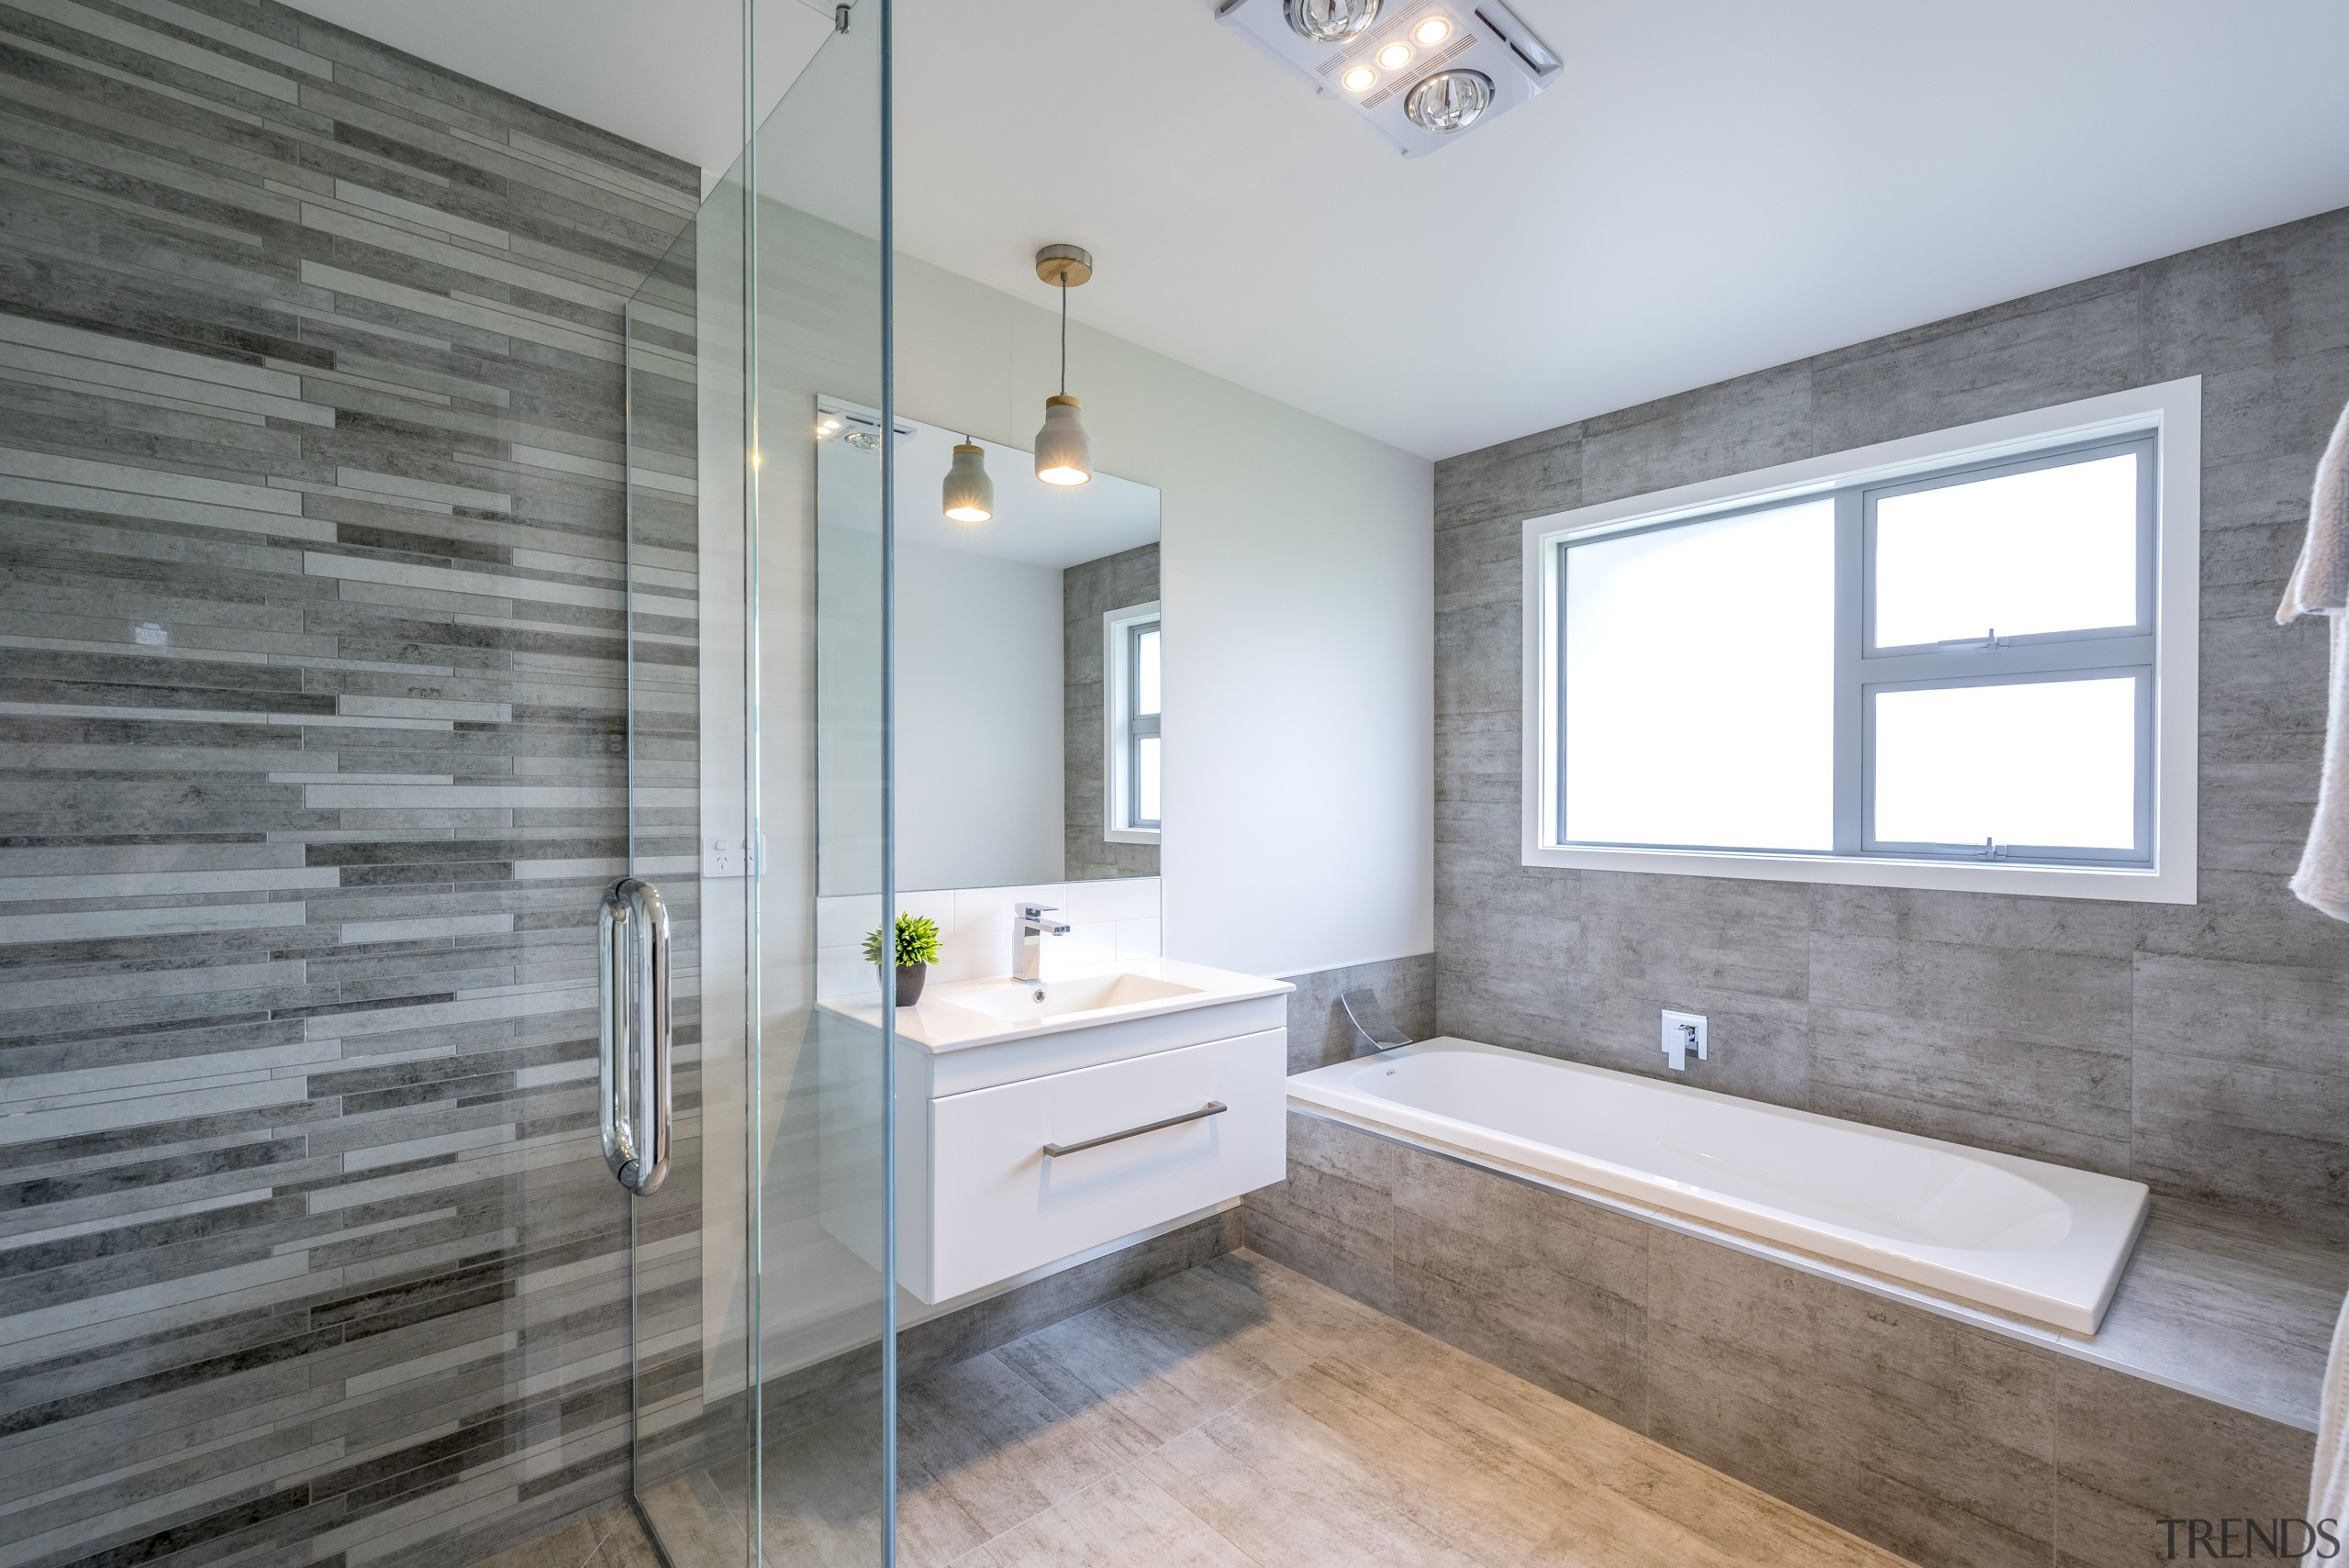 This master ensuite has feature tiles and a architecture, bathroom, daylighting, estate, floor, flooring, home, interior design, real estate, room, tile, window, gray